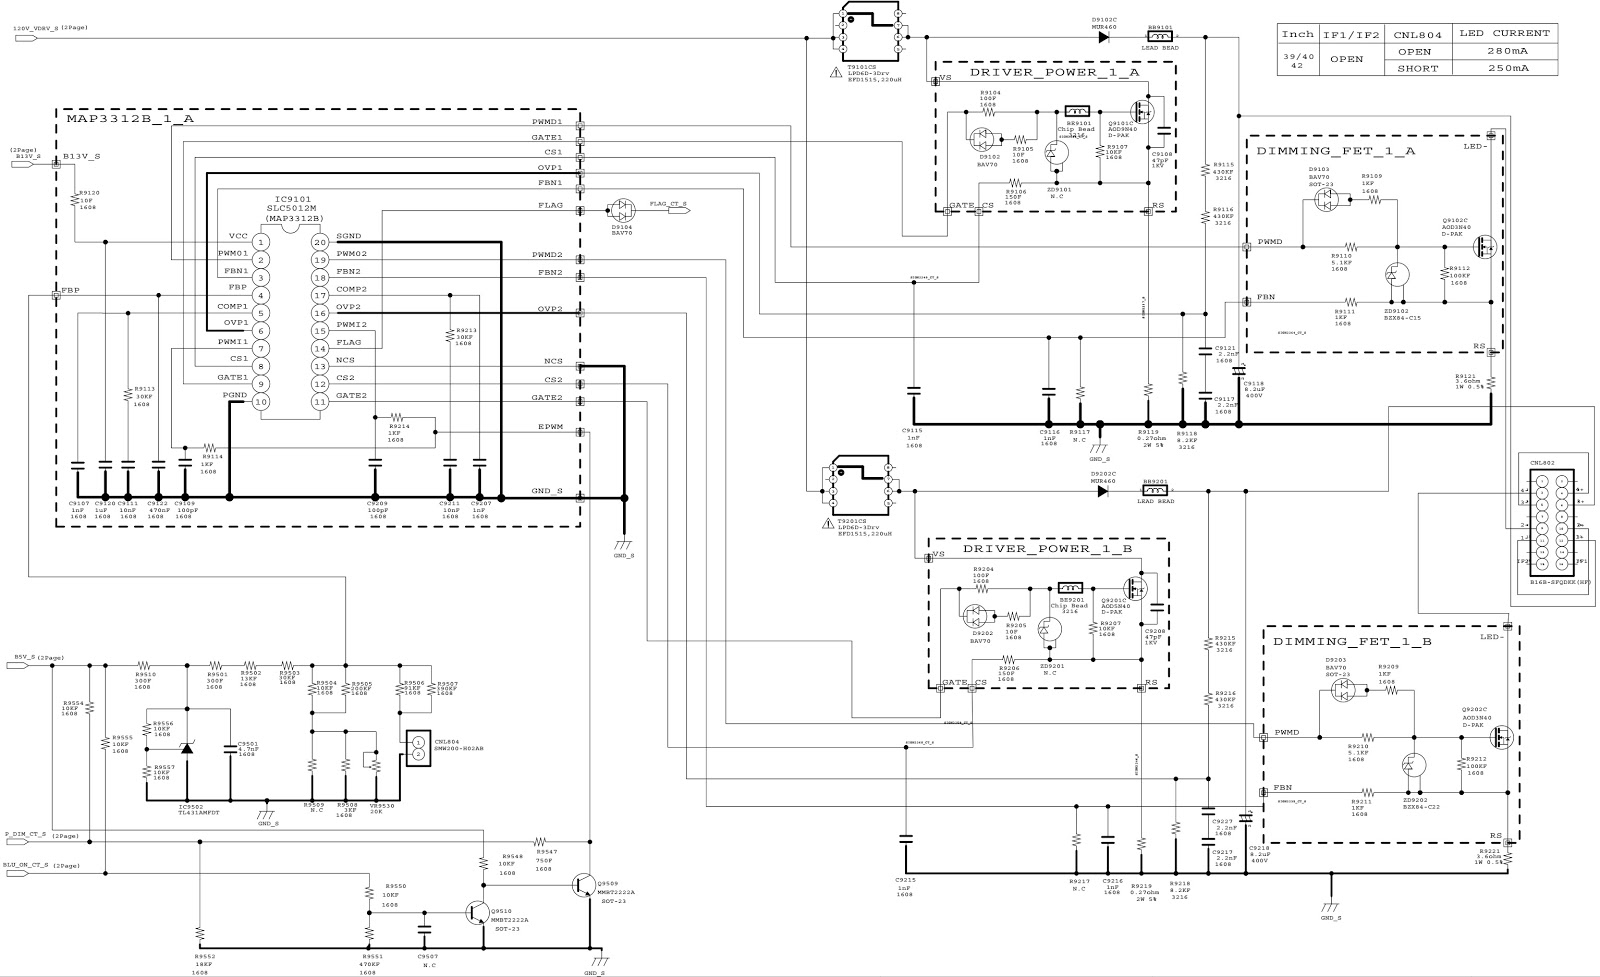 BN44 00645A - Samsung LE40R88BD - SMPS Schematic | Electro help